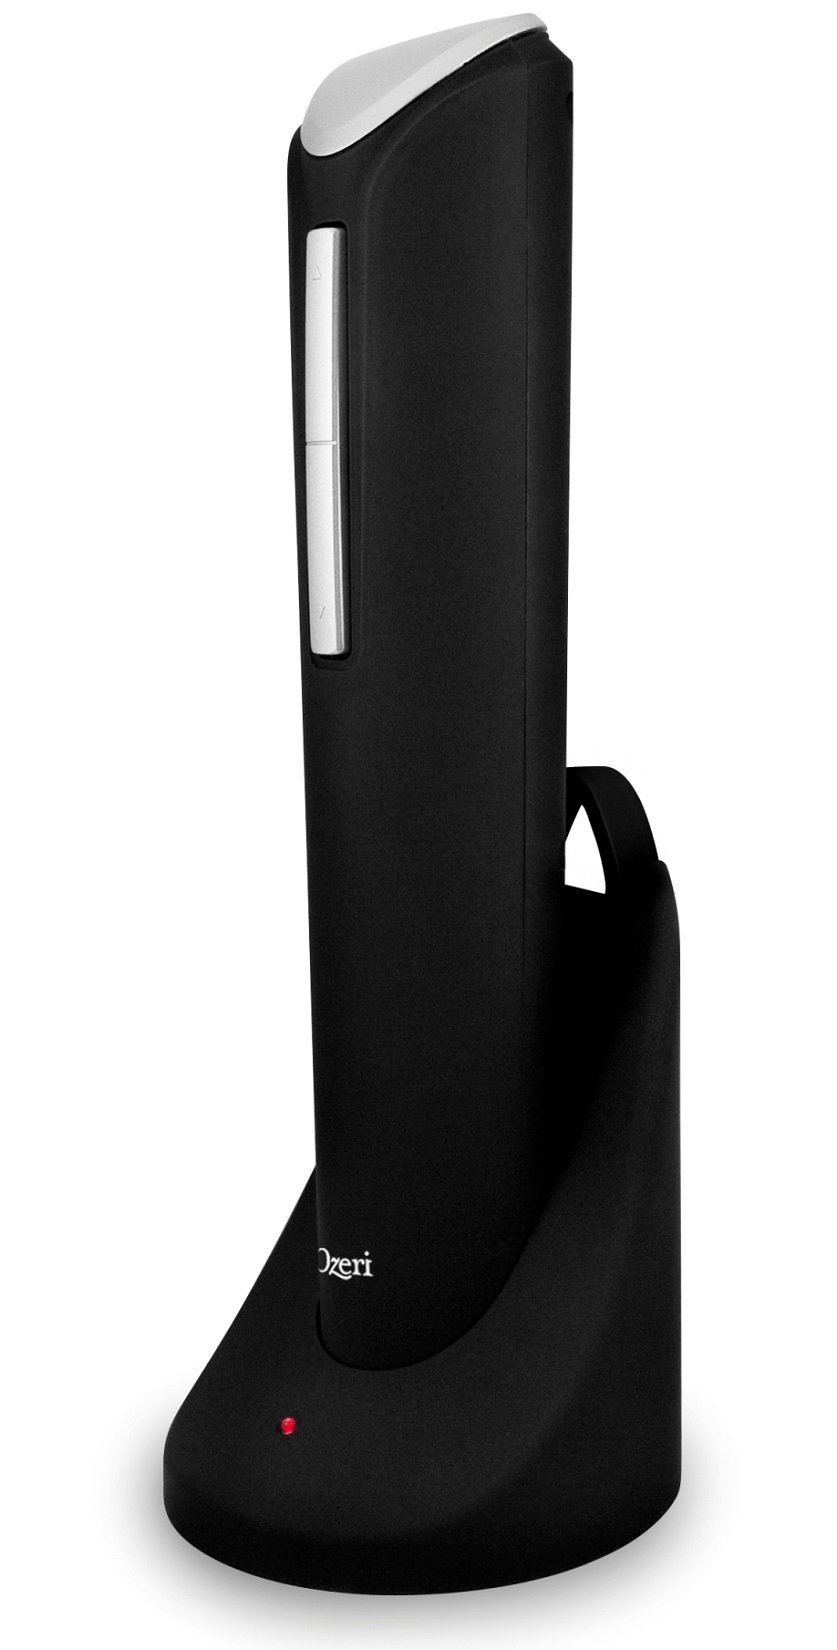 Ozeri Pro Electric Wine Opener with Wine Pourer, Stopper and Foil Cutter, in Black by Ozeri (Image #3)